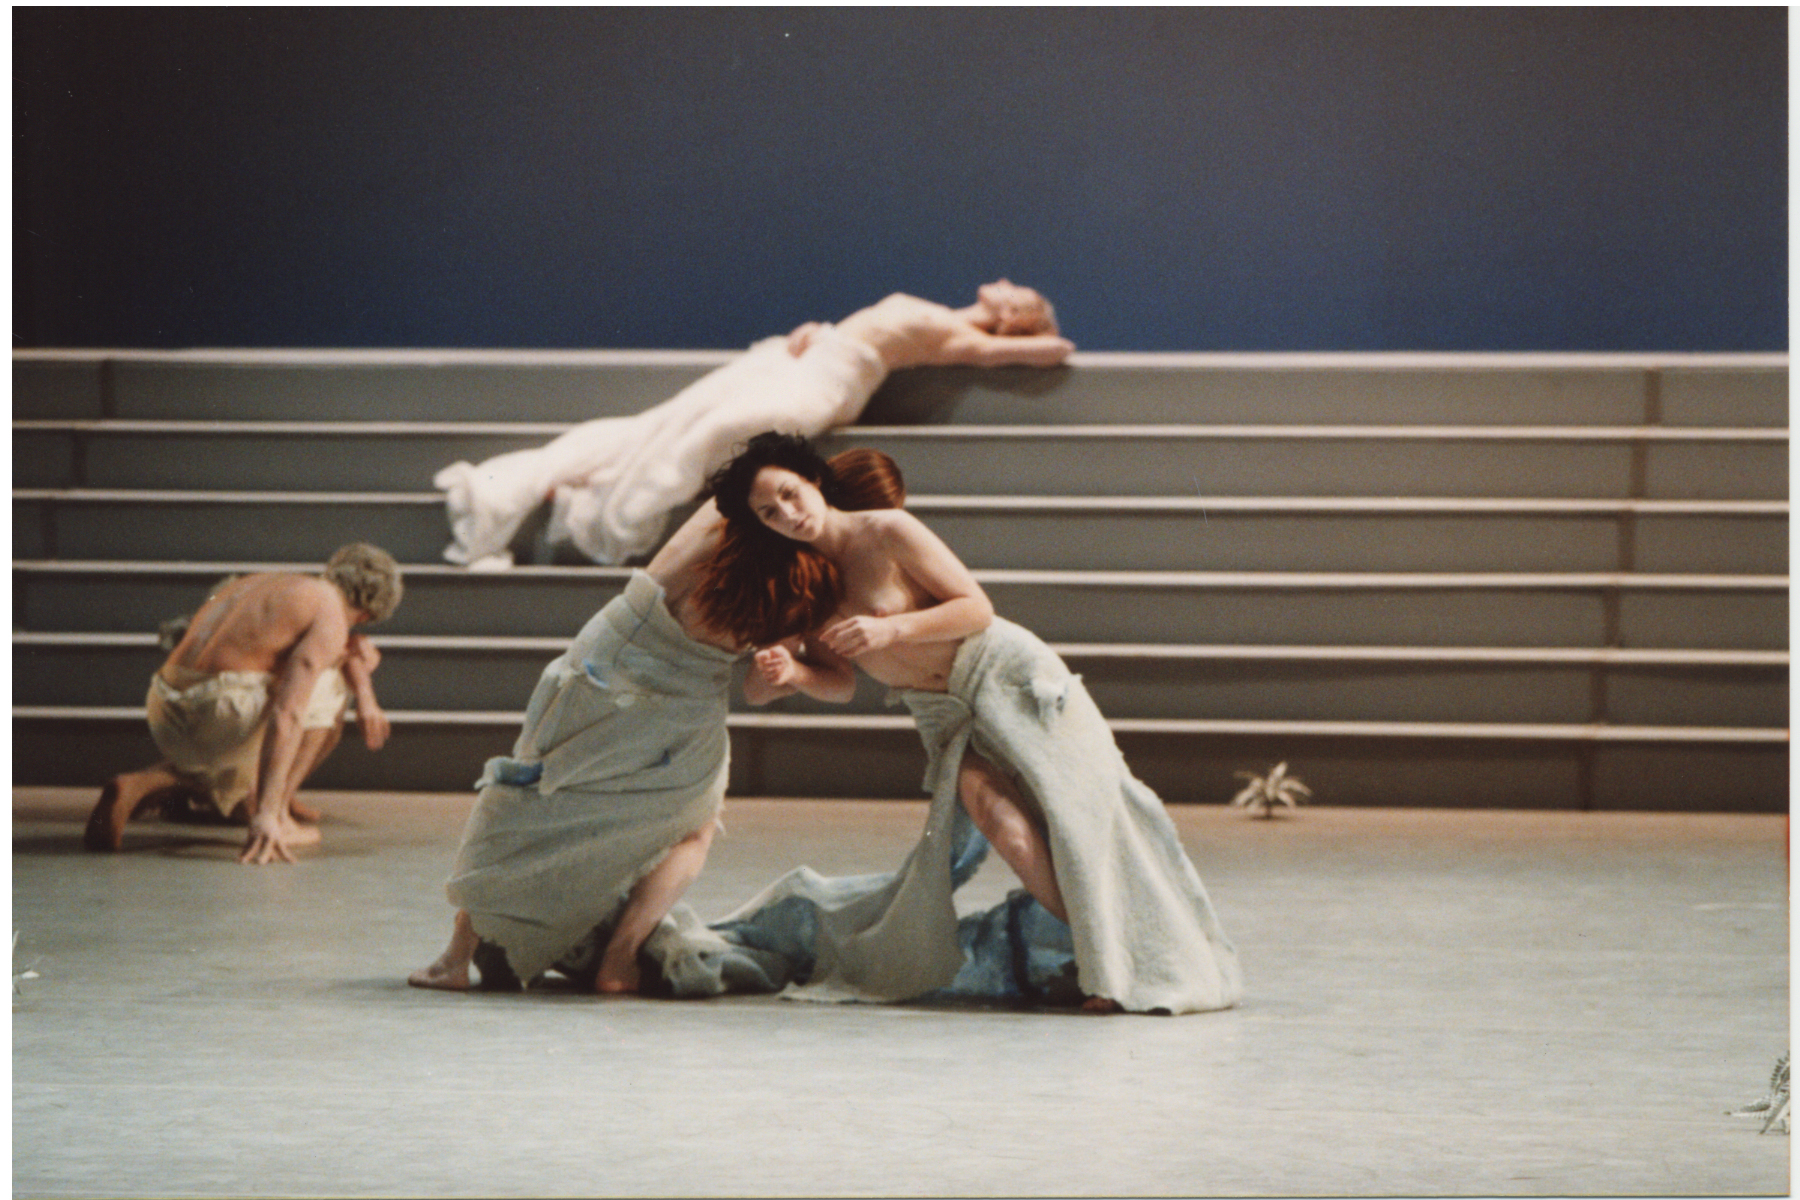 Stanislavsky Theatre, Moscow, Russia October 3-5, 2014